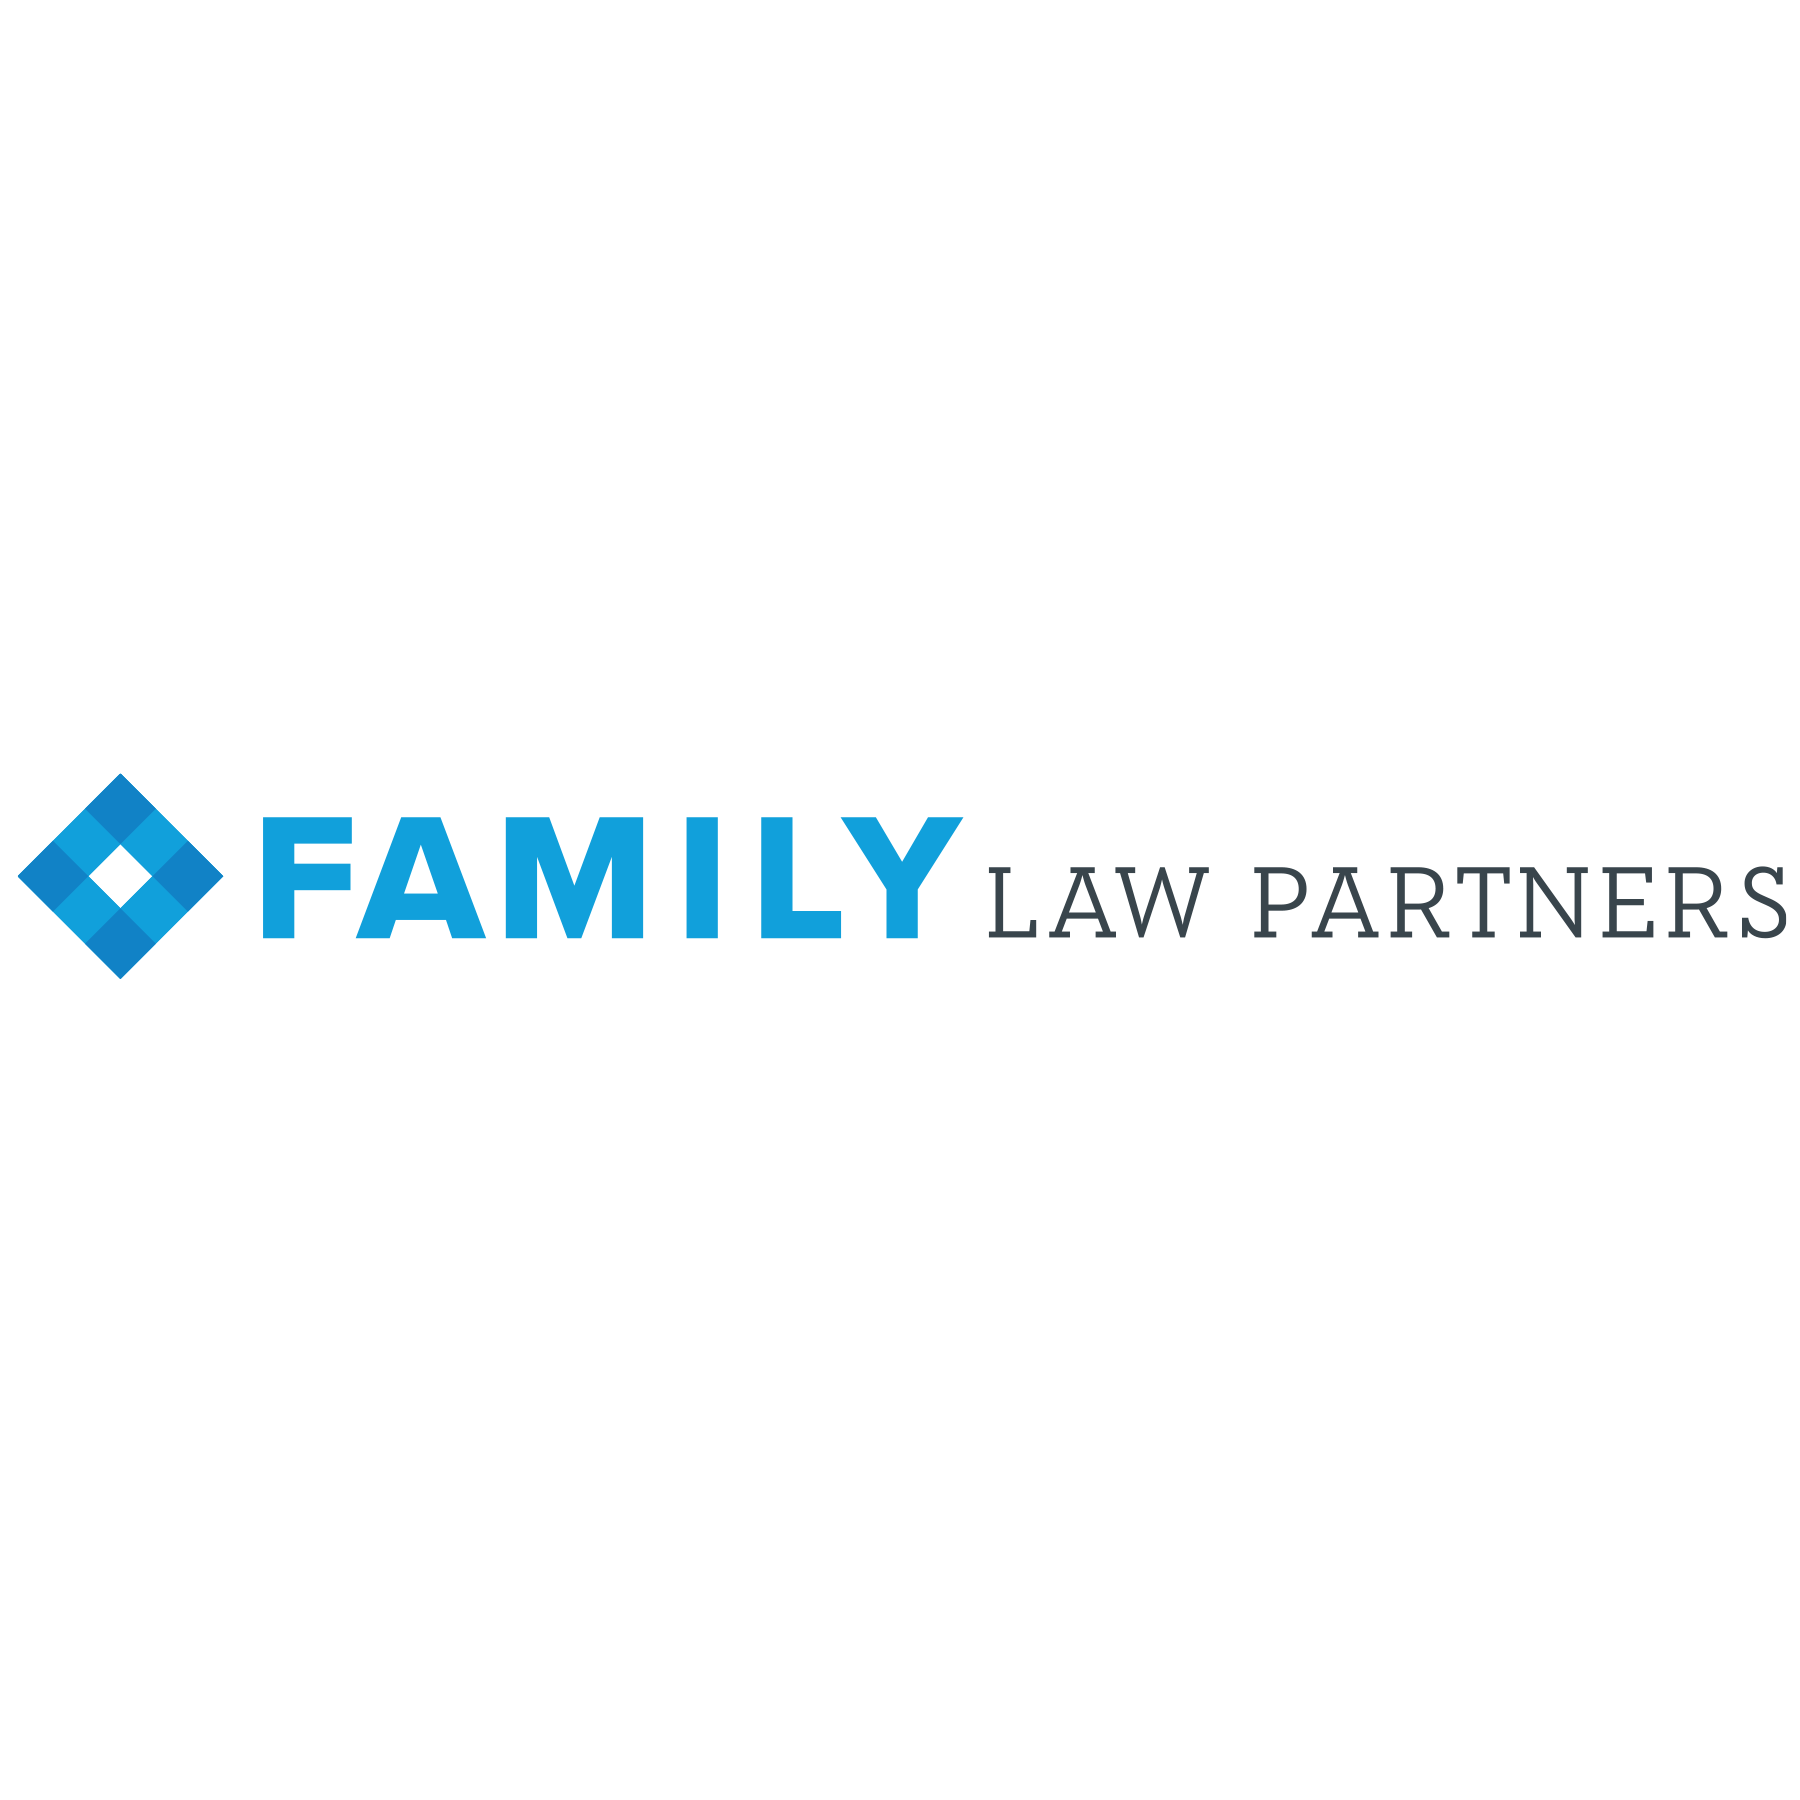 Family Law Partners image 4